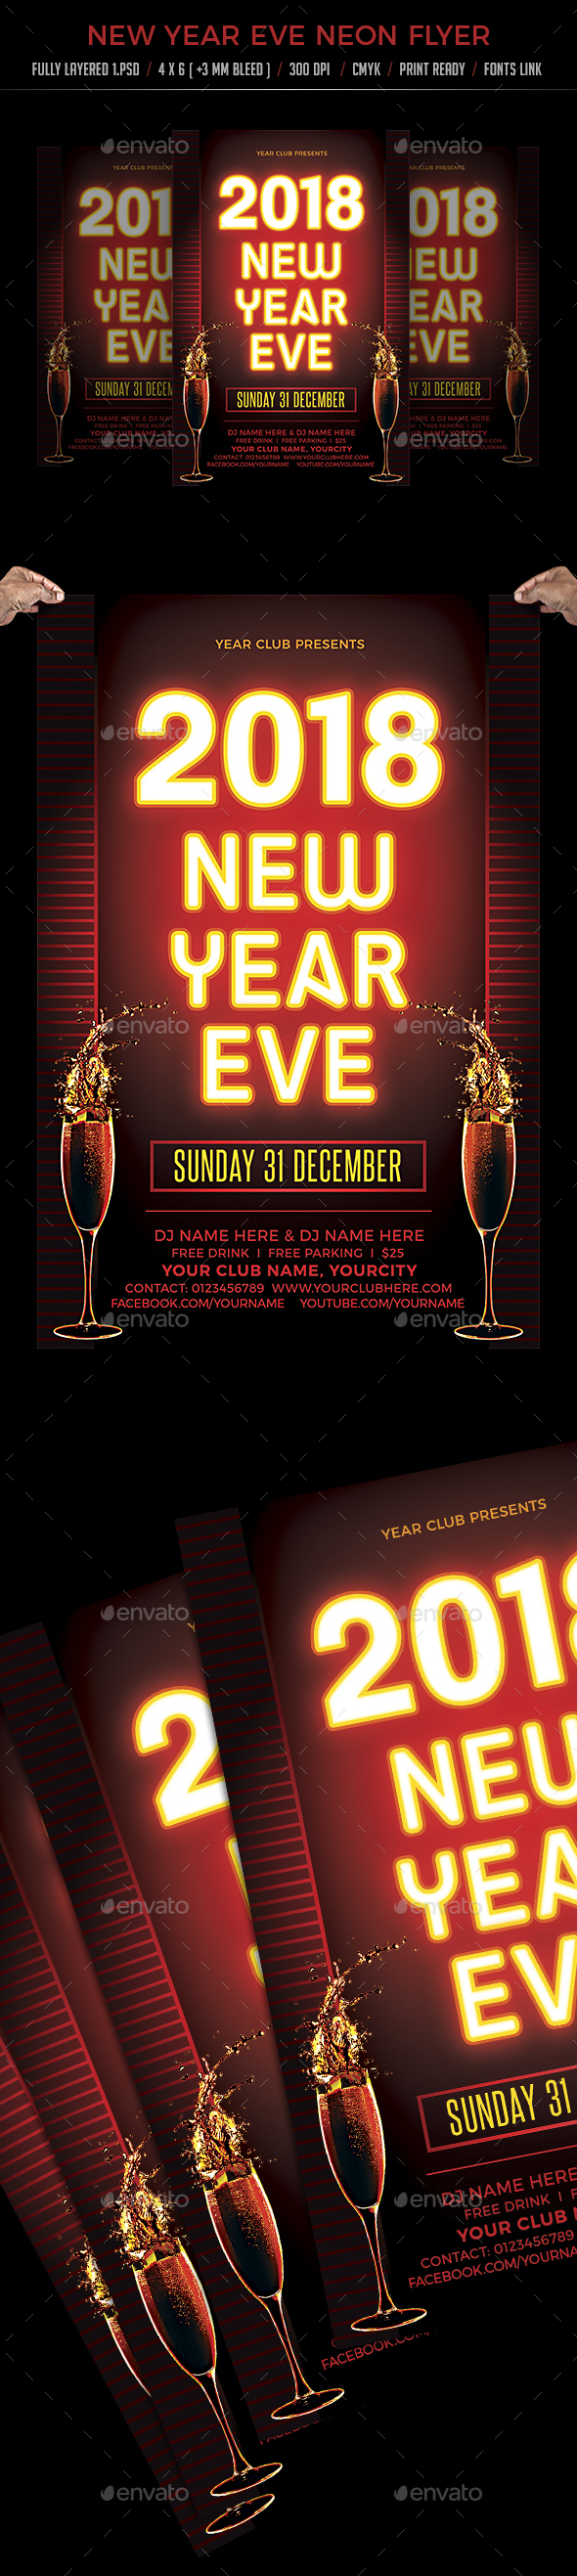 New Year Eve Neon Flyer - Flyers Print Templates